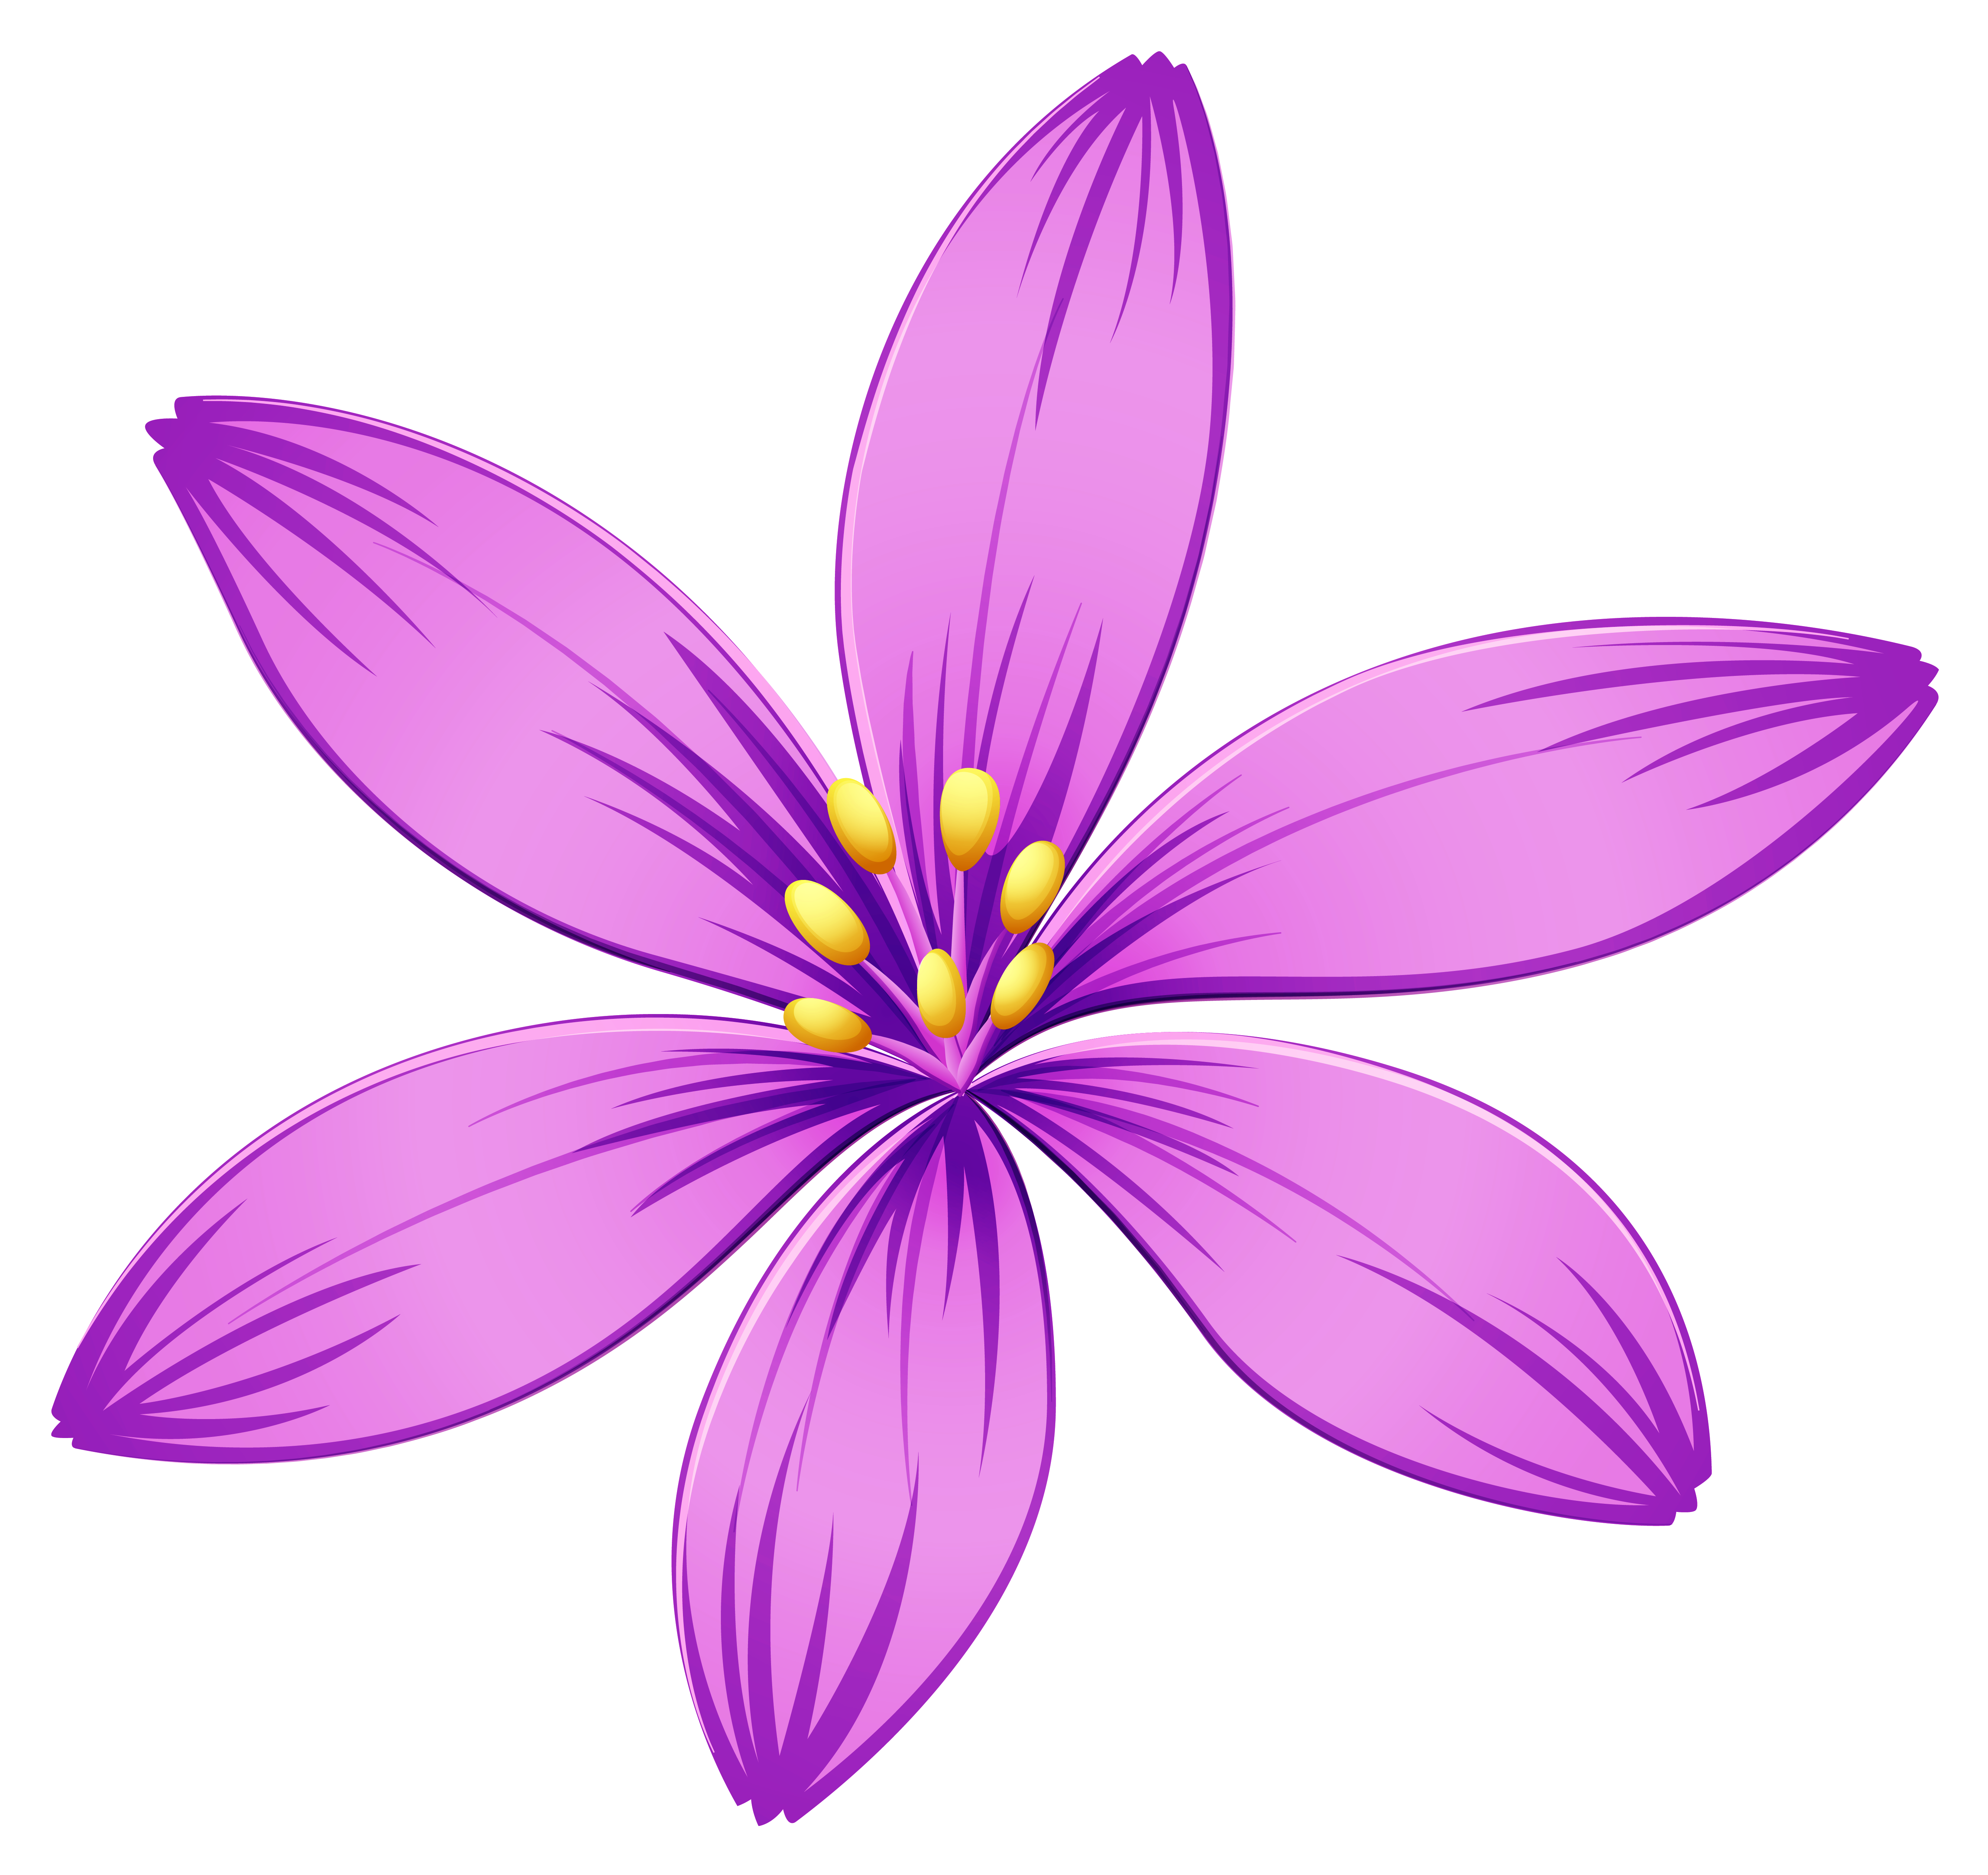 Purple flower png. Image gallery yopriceville high